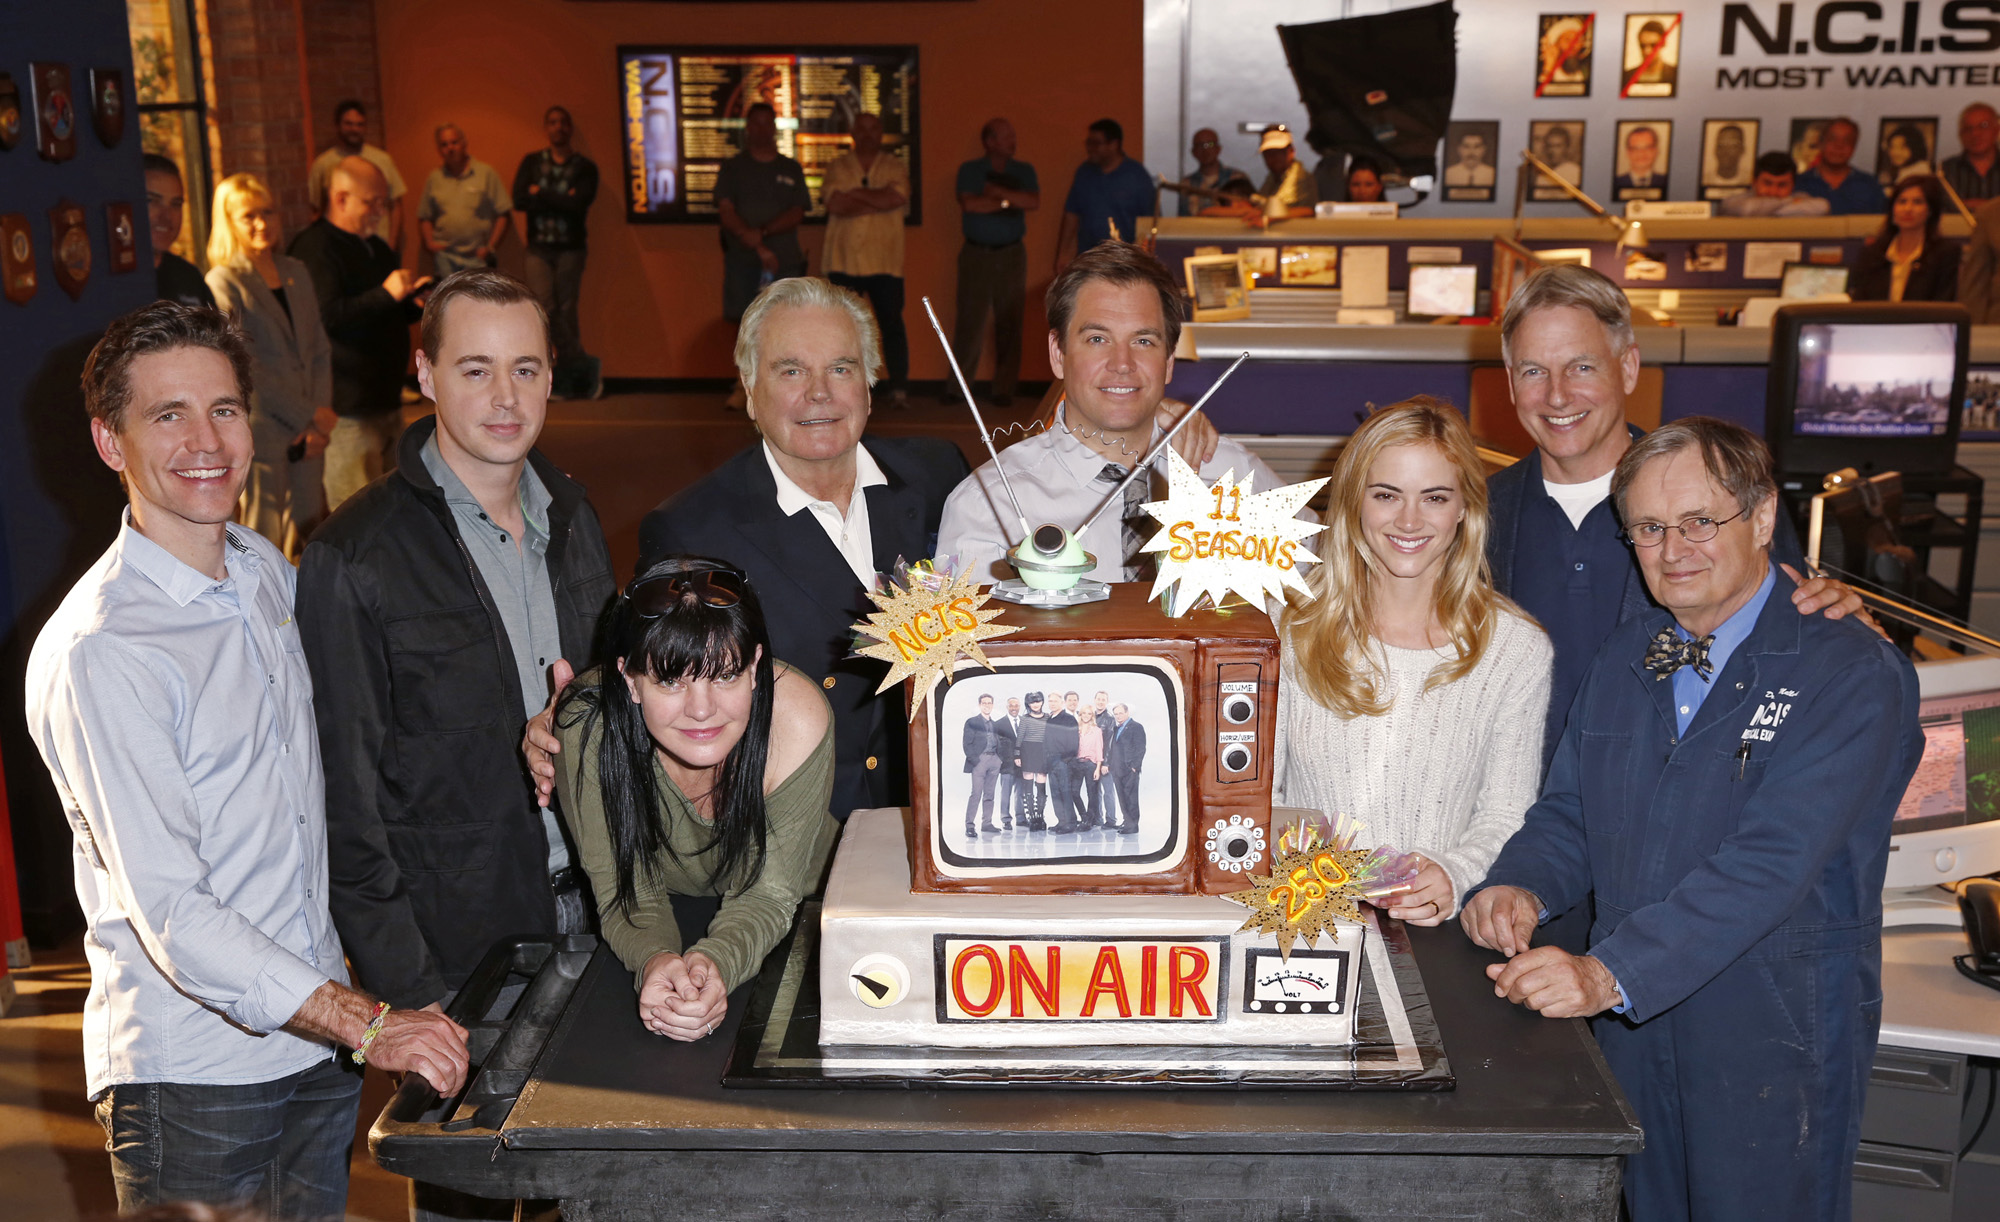 NCIS 250th Episode Celebration